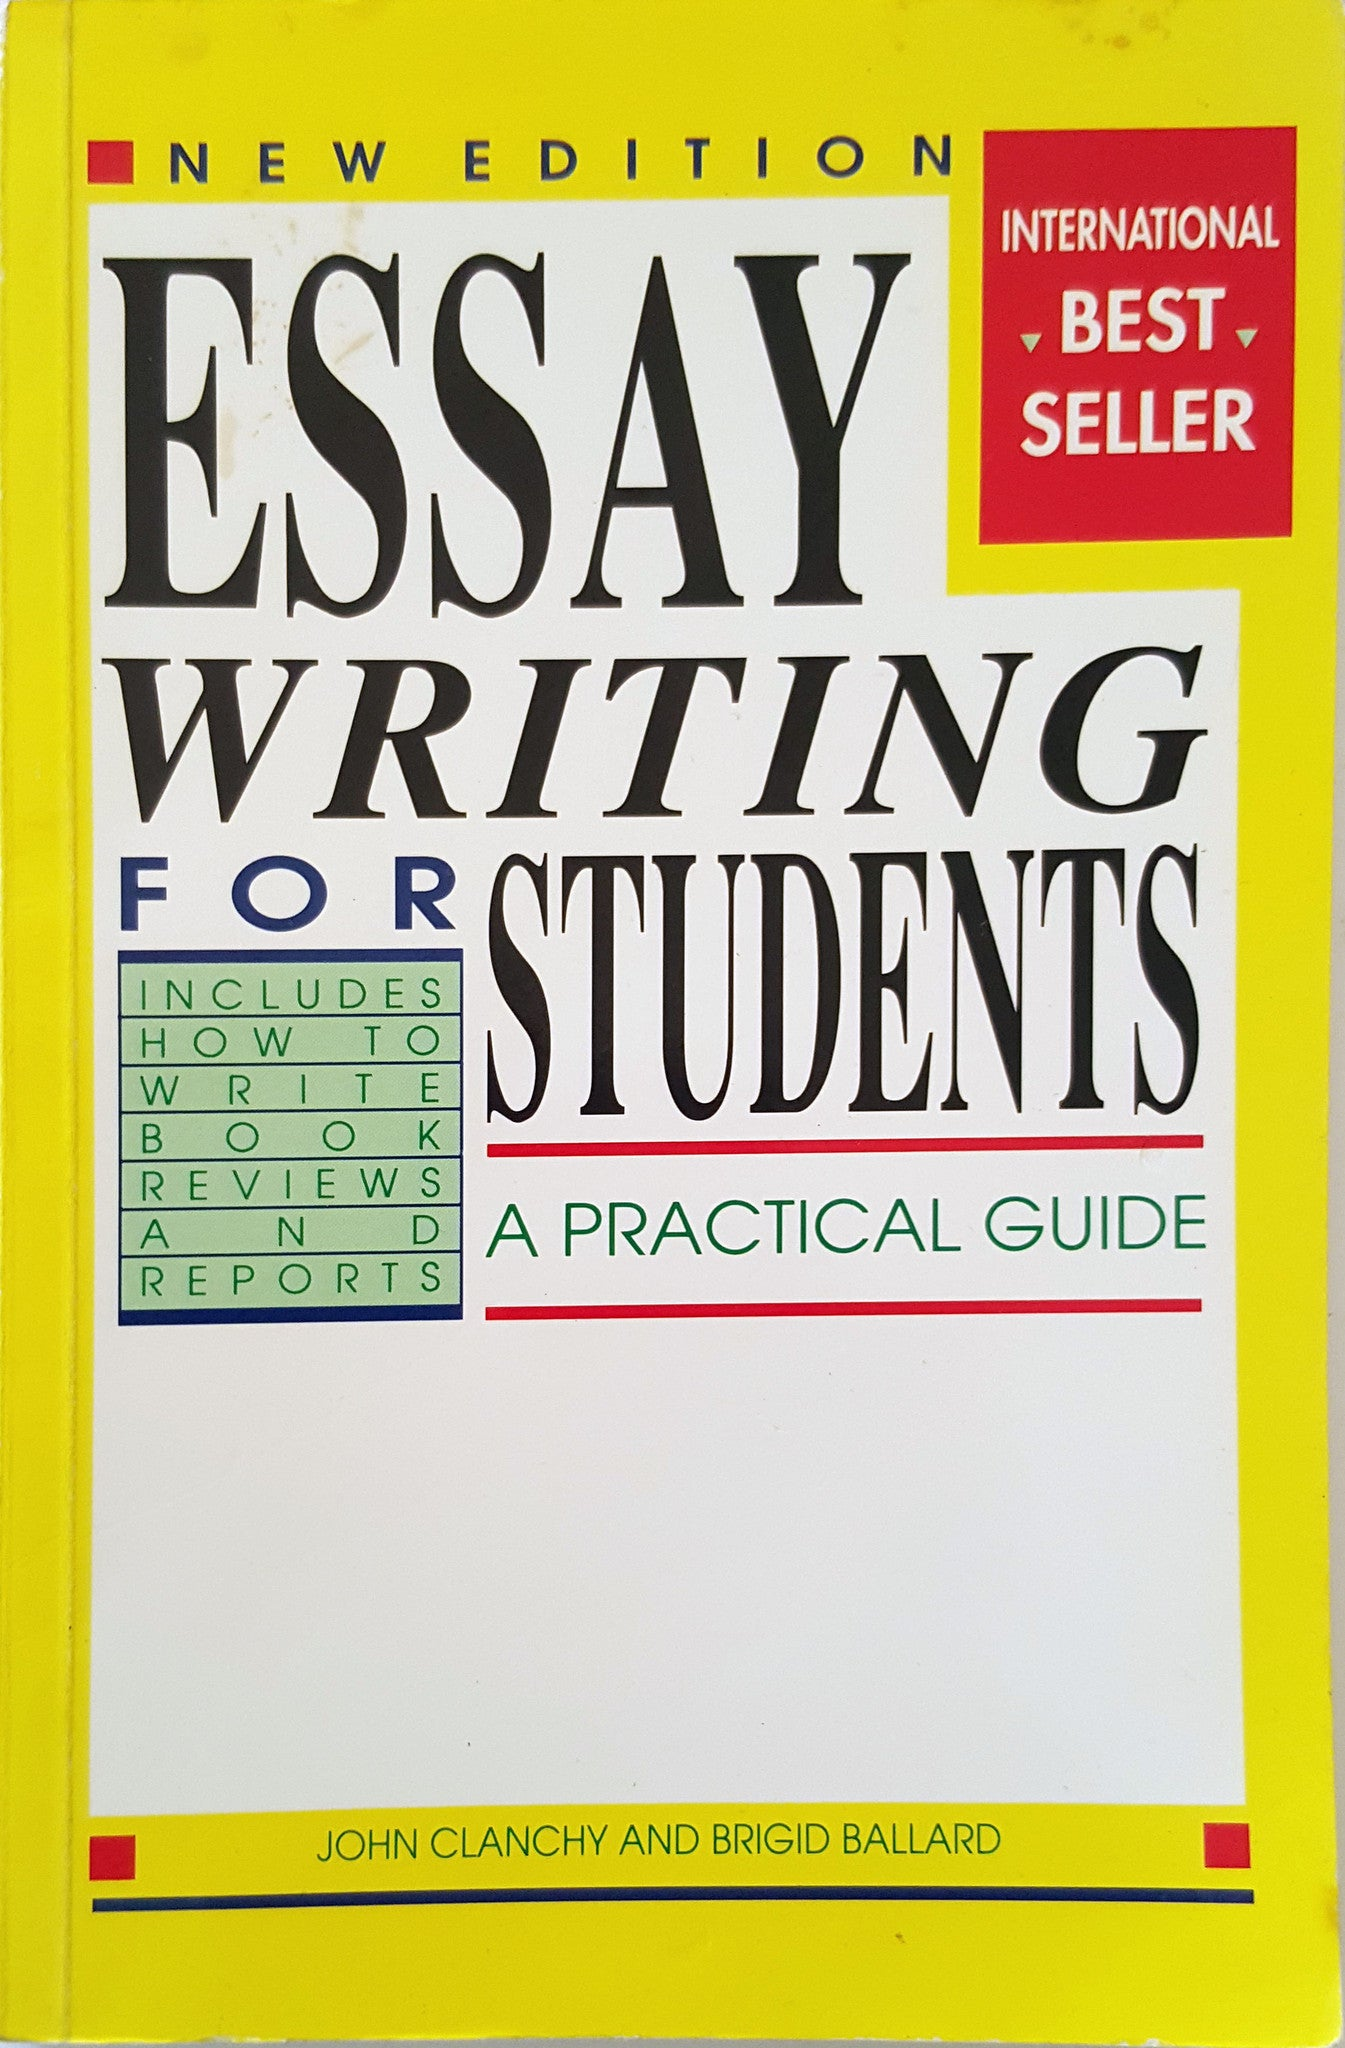 essay writing for students clanchy ballard